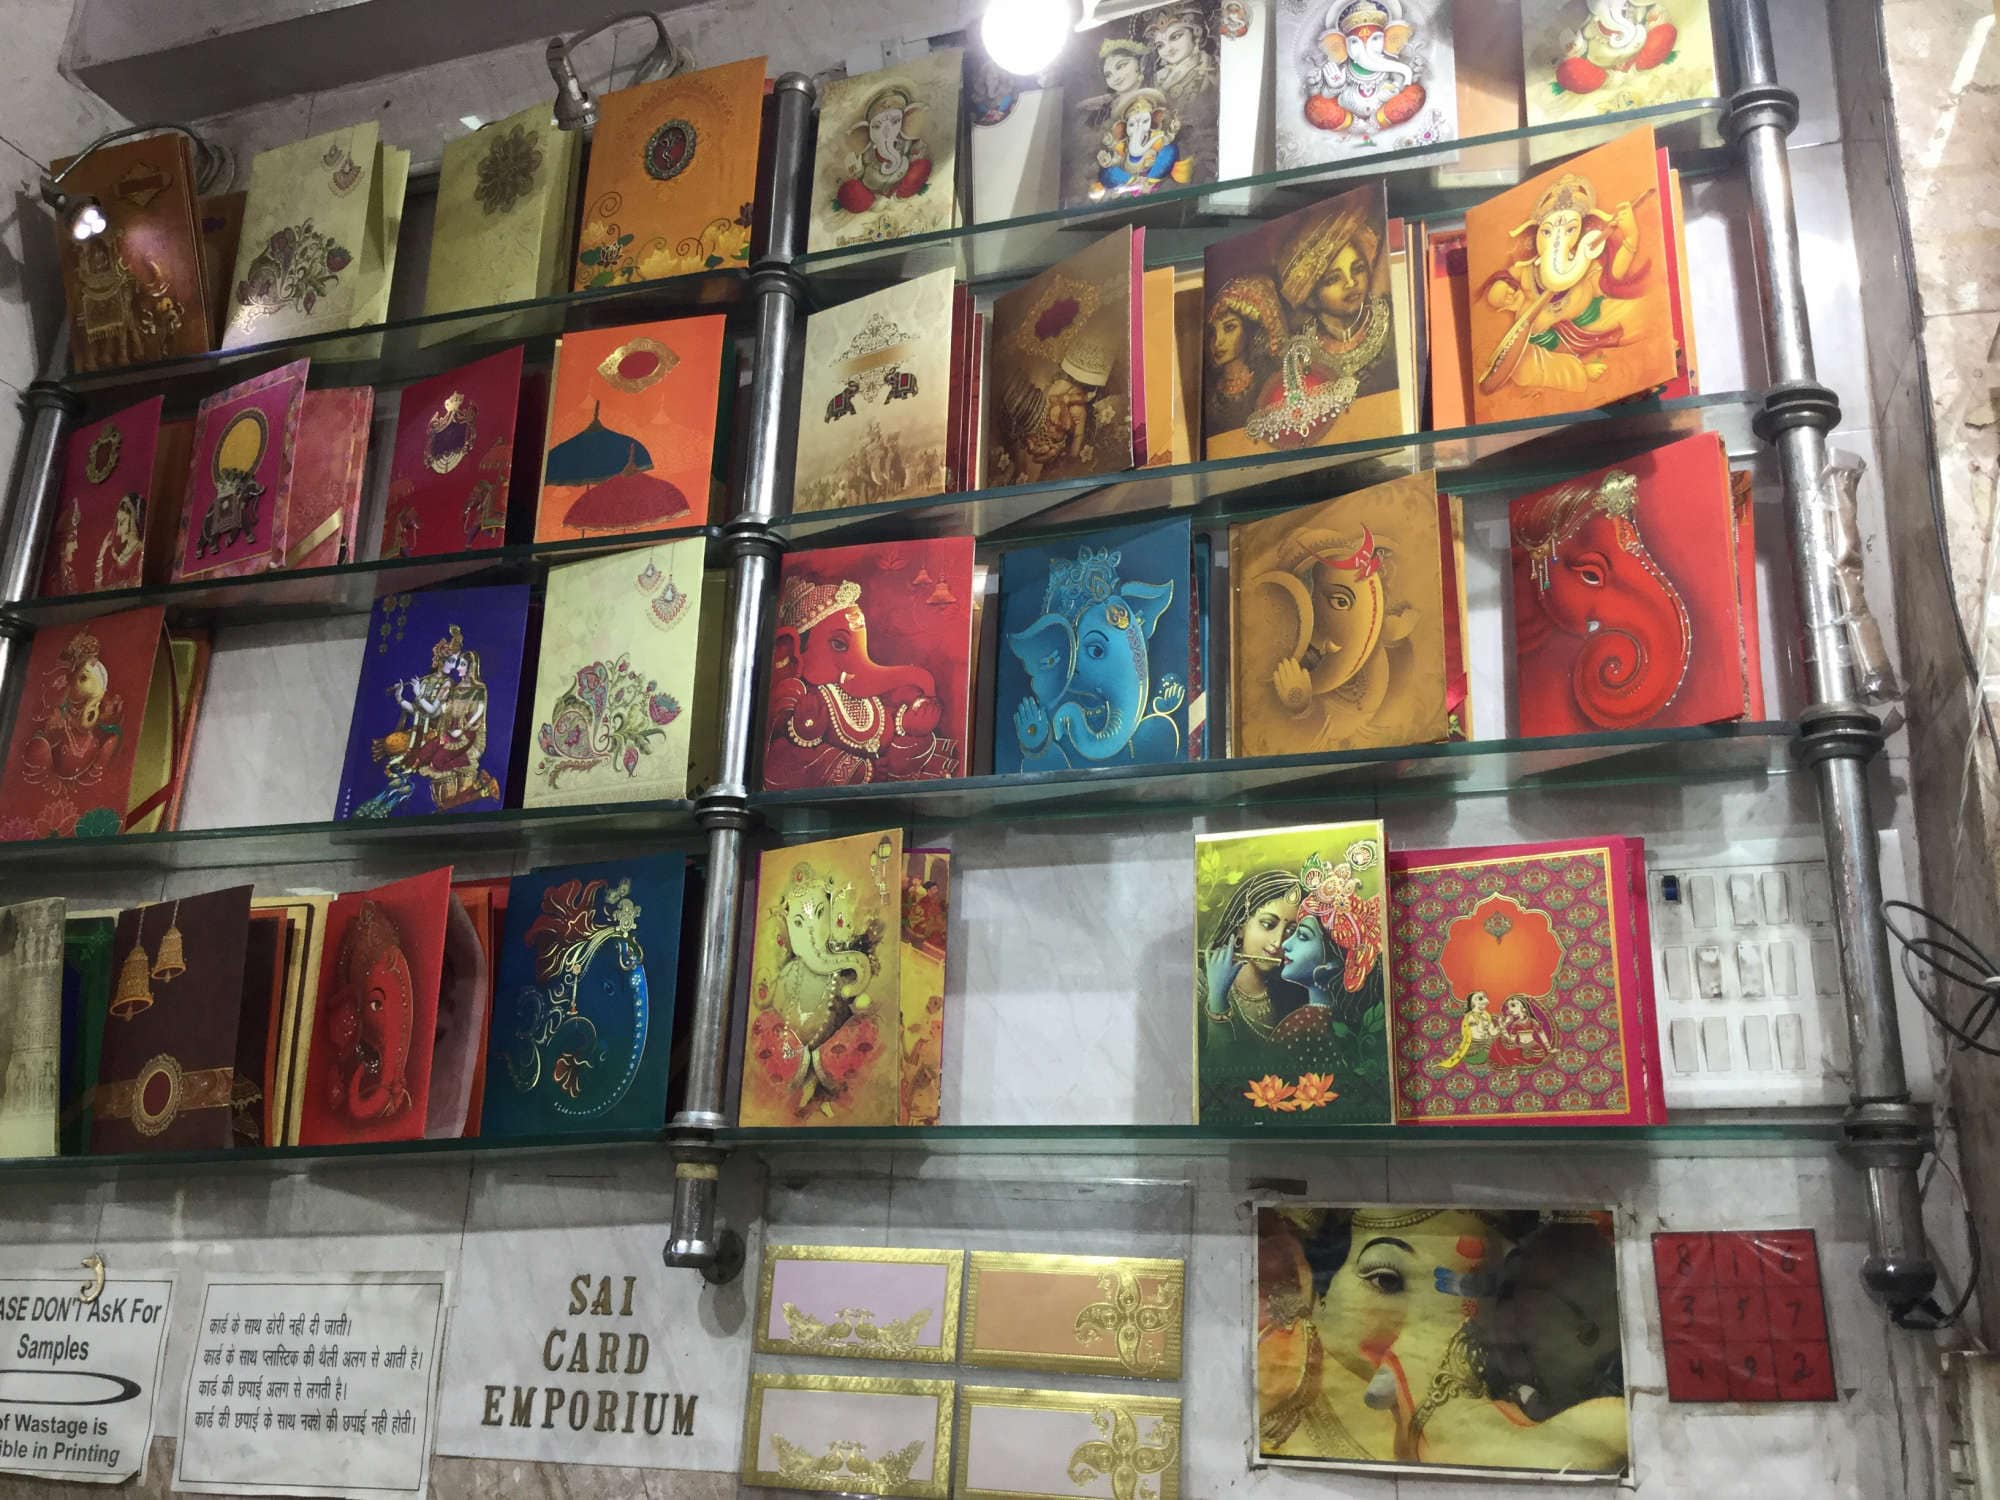 wedding cards in hyderabad general bazar%0A Sai Cards Emporium  Chawri Bazar  Wedding Card Manufacturers in Delhi   Justdial